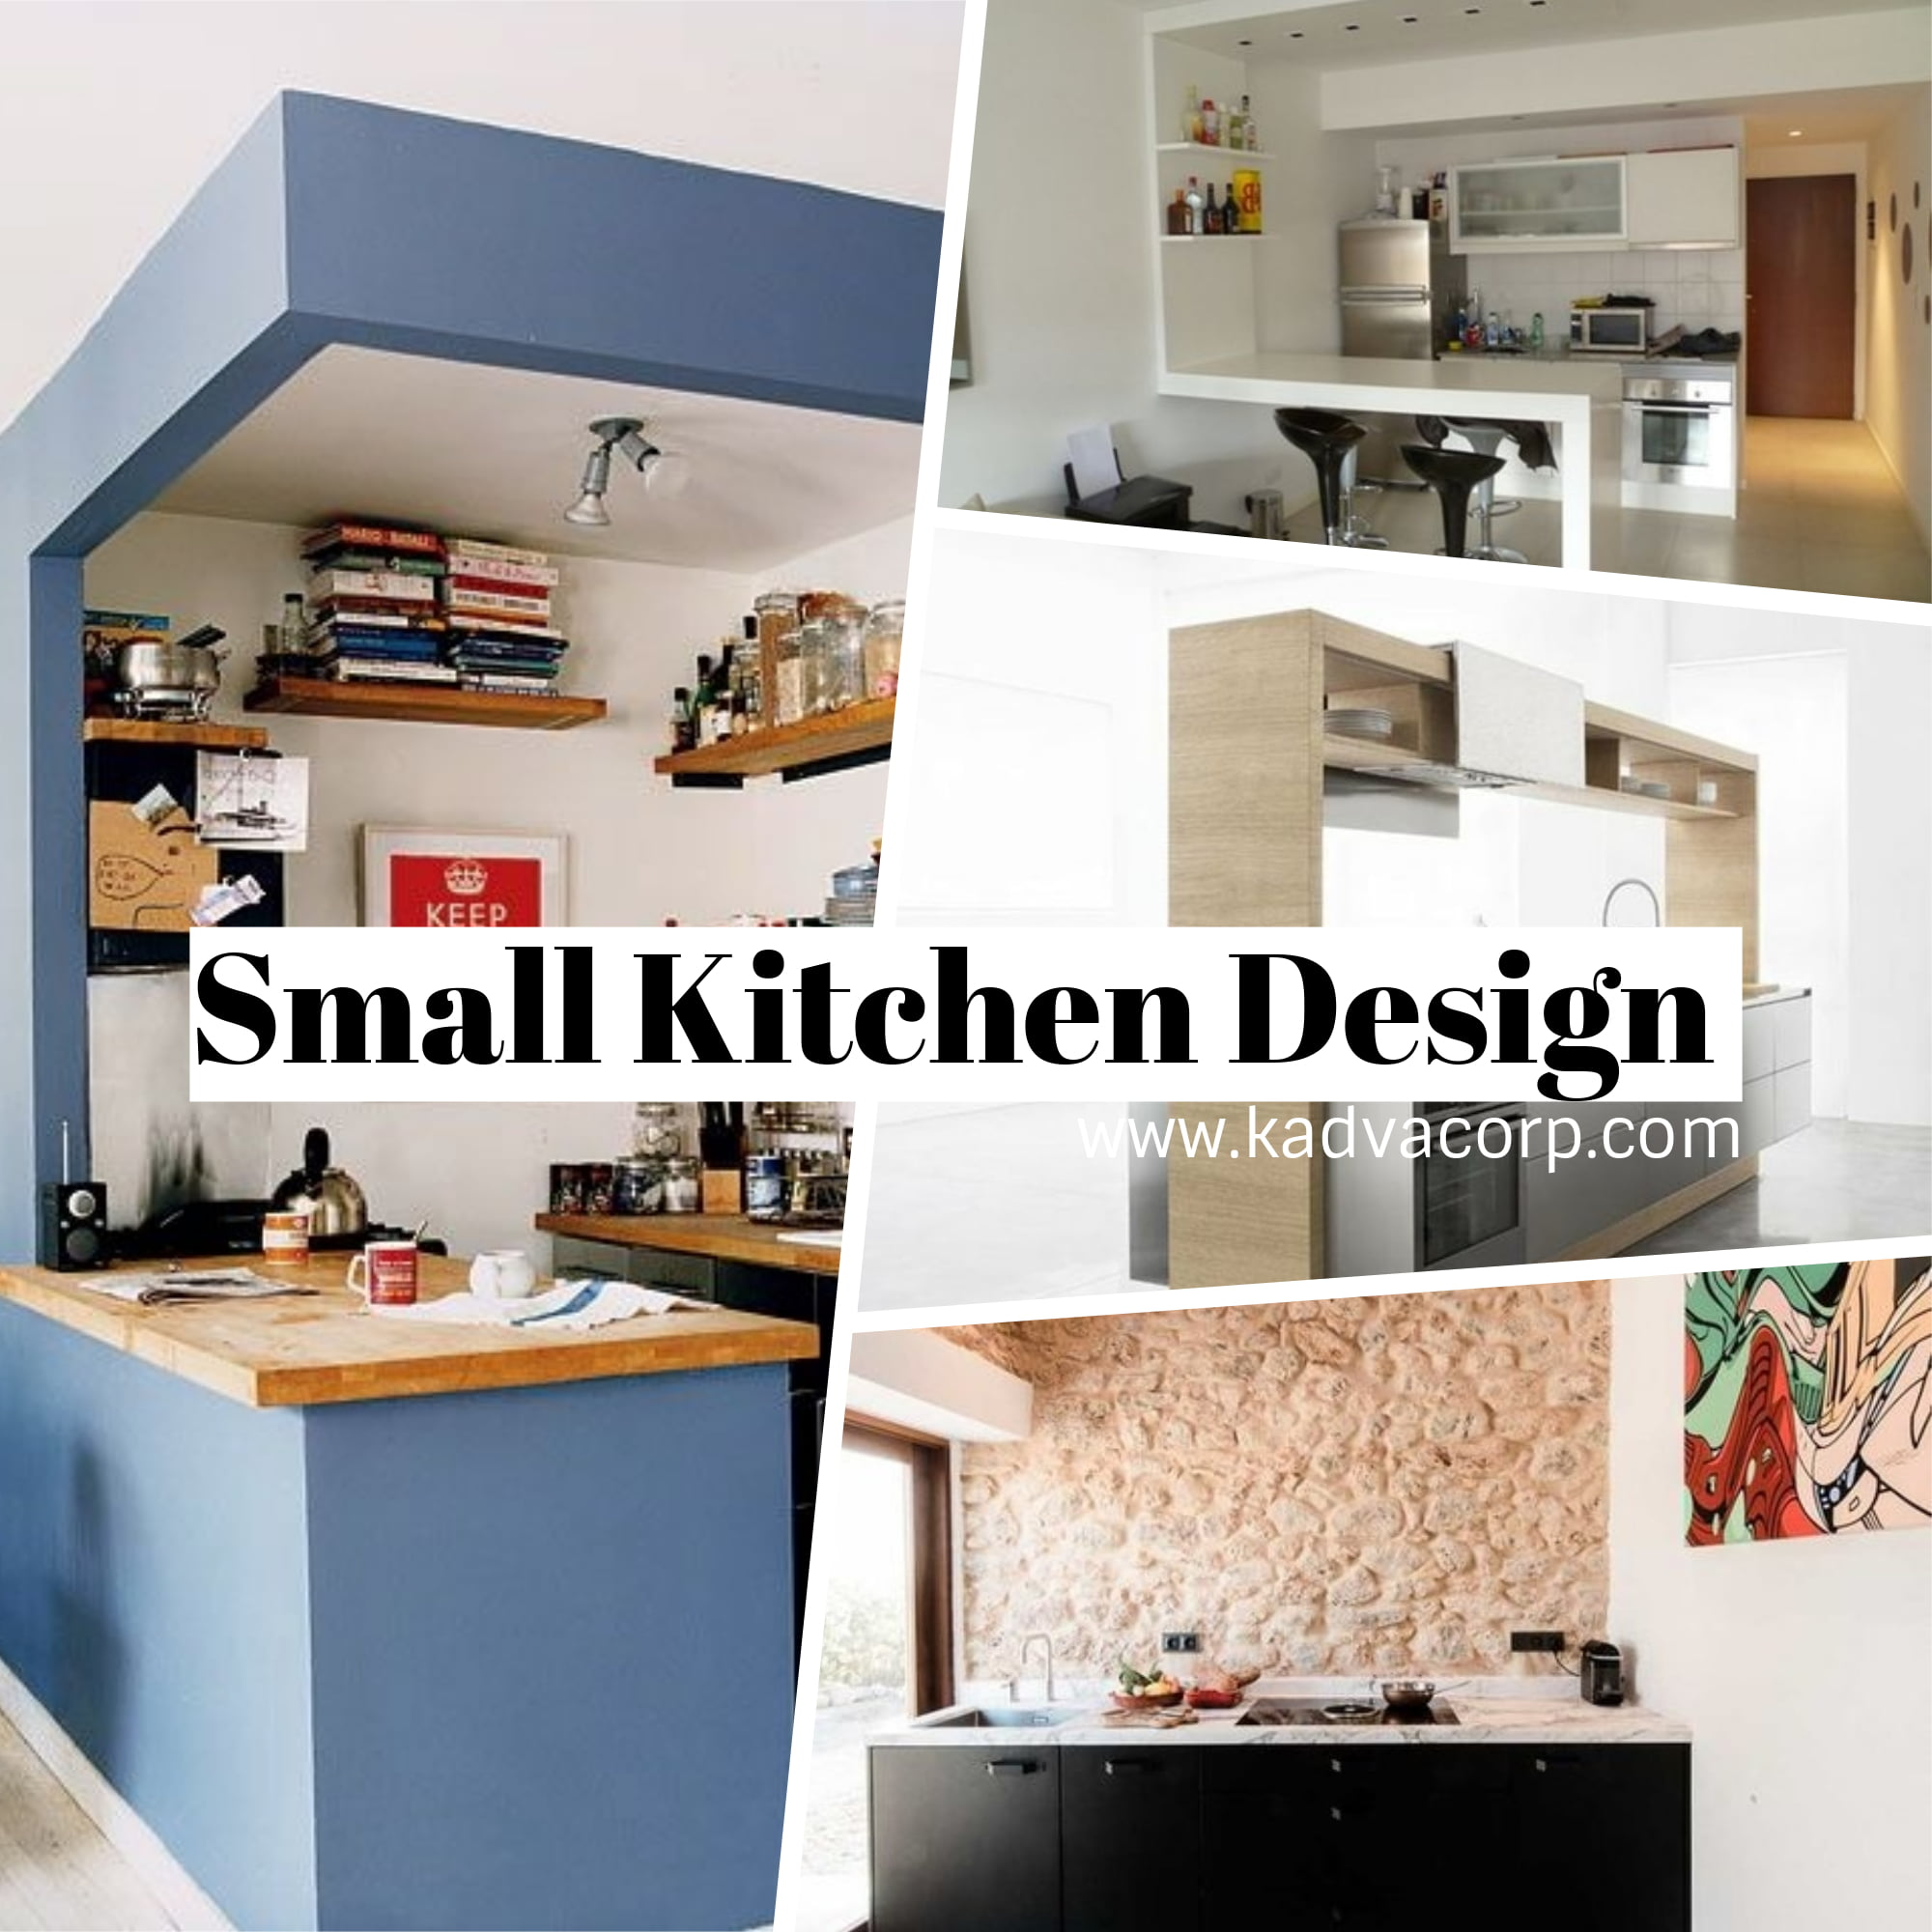 Modern Furniture 2014 Easy Tips For Small Kitchen: 100+ Small Kitchen Designs Ideas With Modern Look